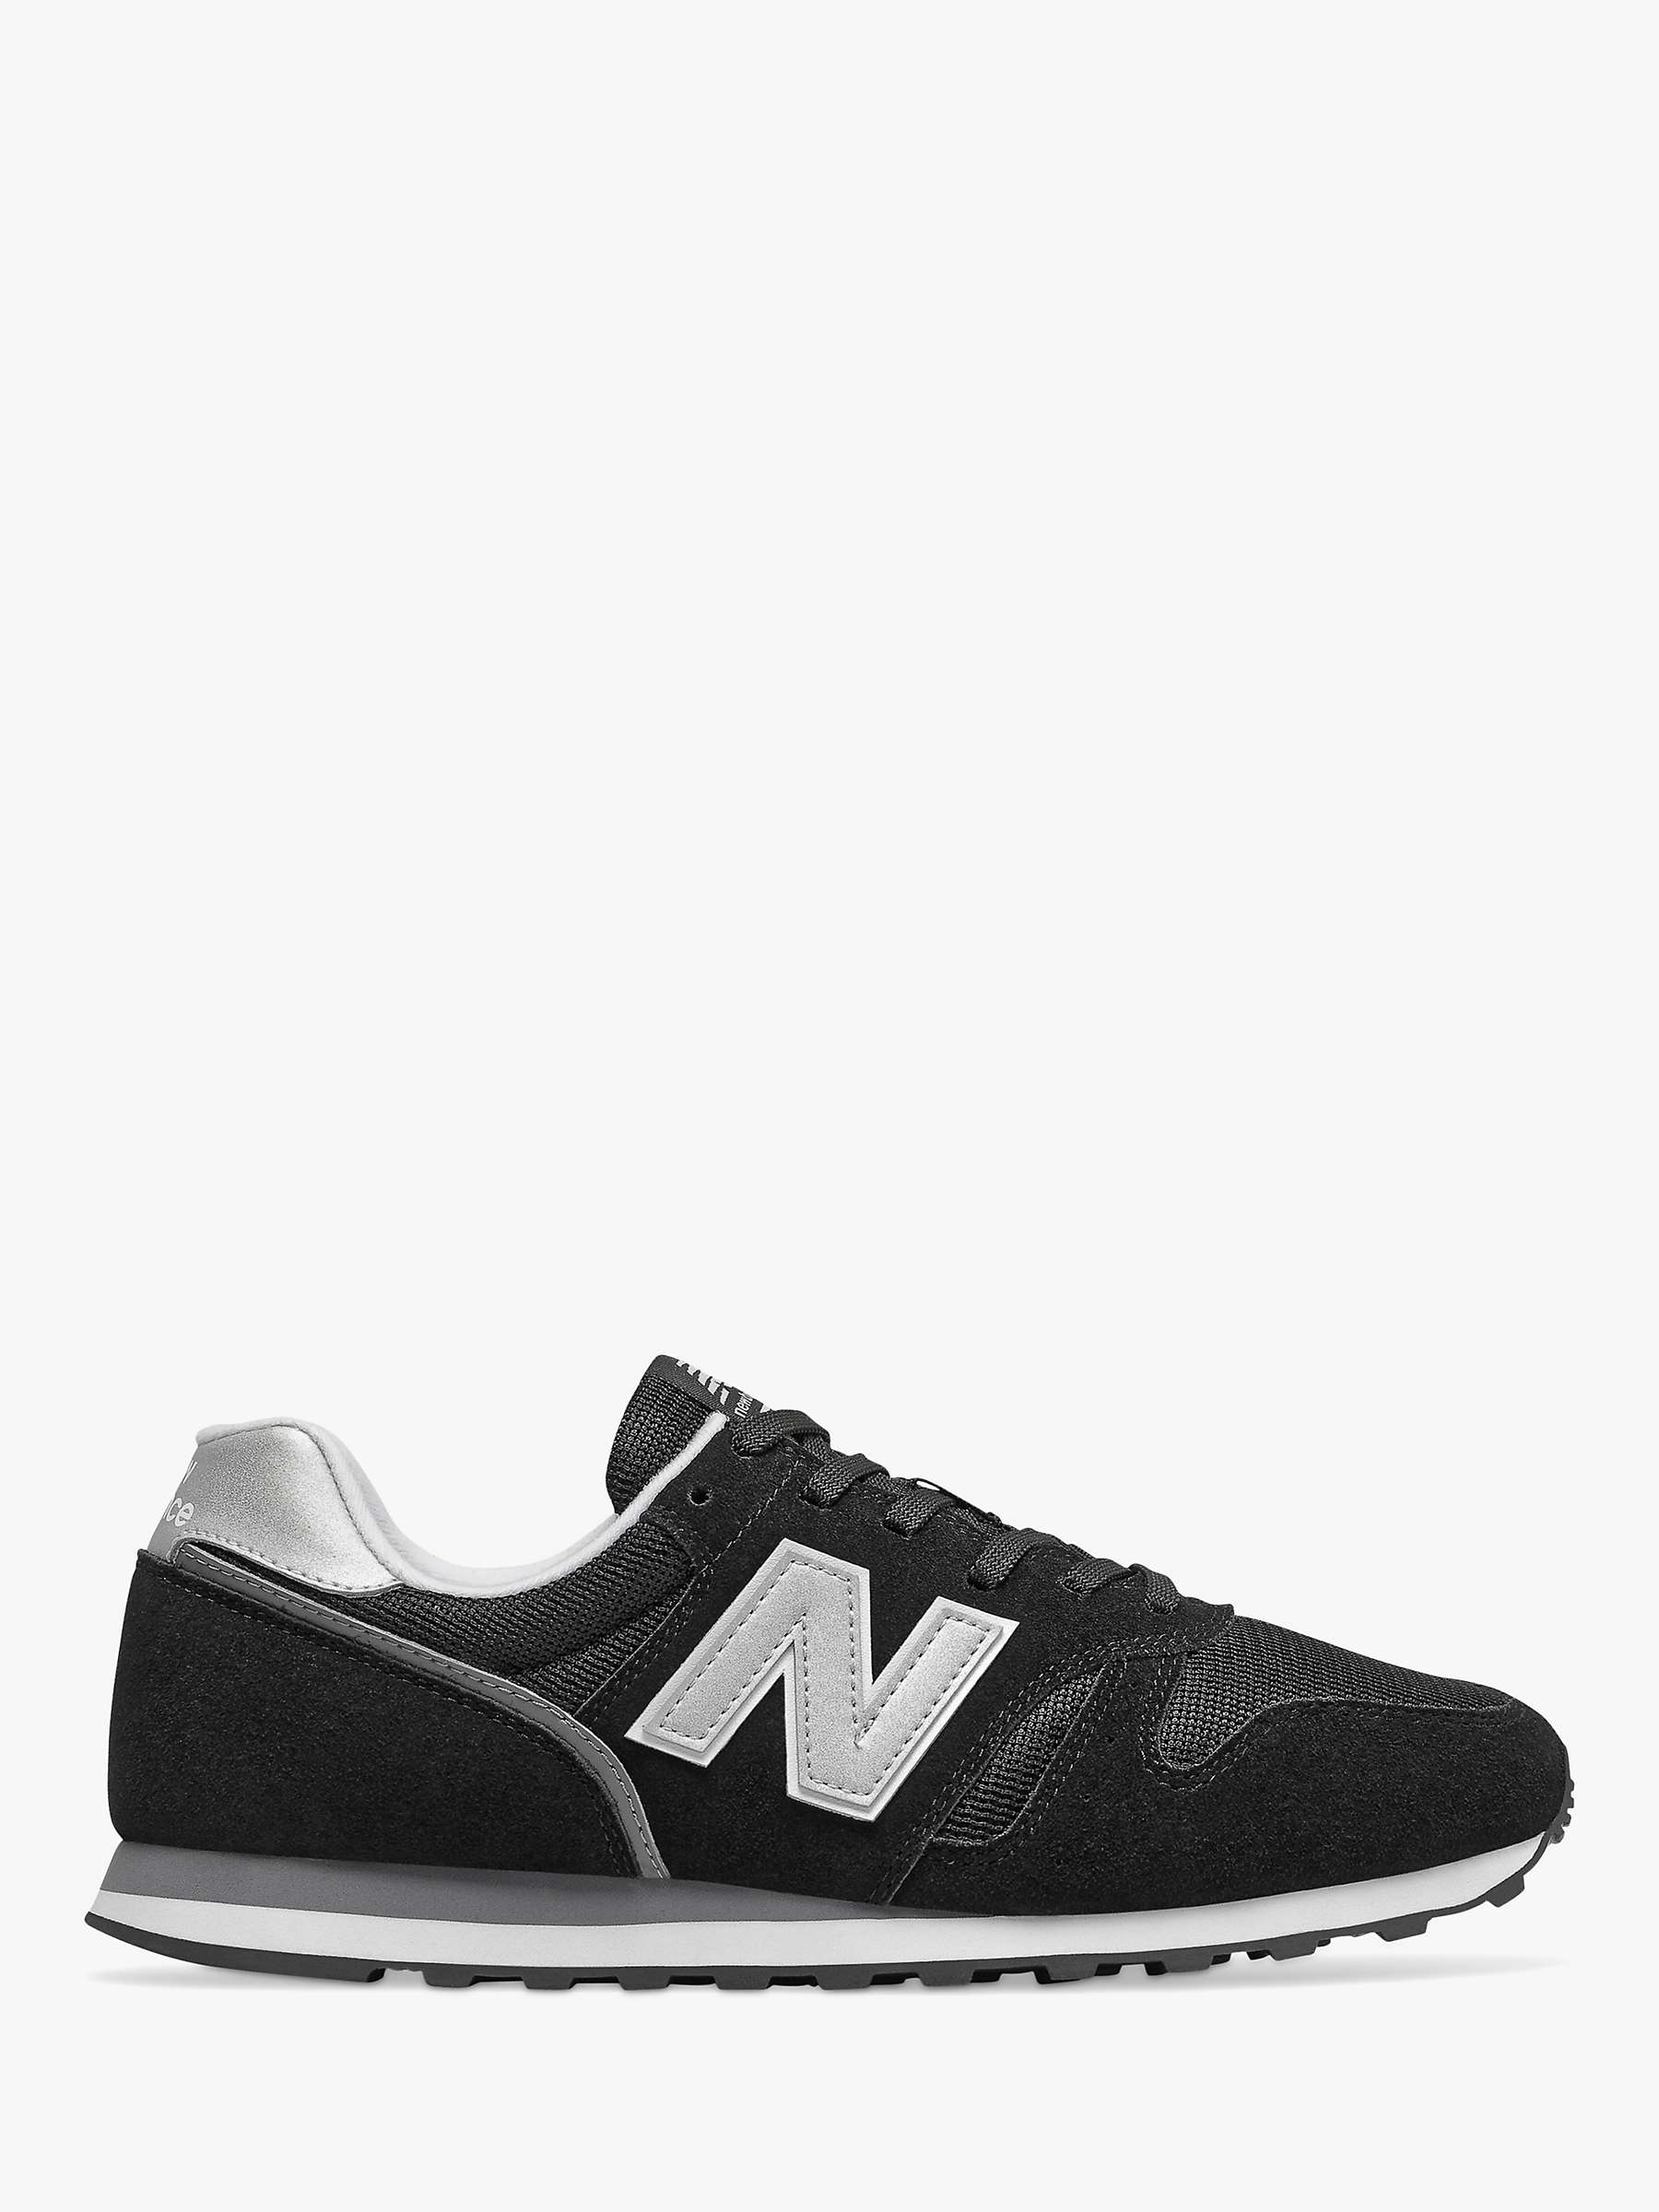 New Balance 373 V2 Trainers, Black/Silver